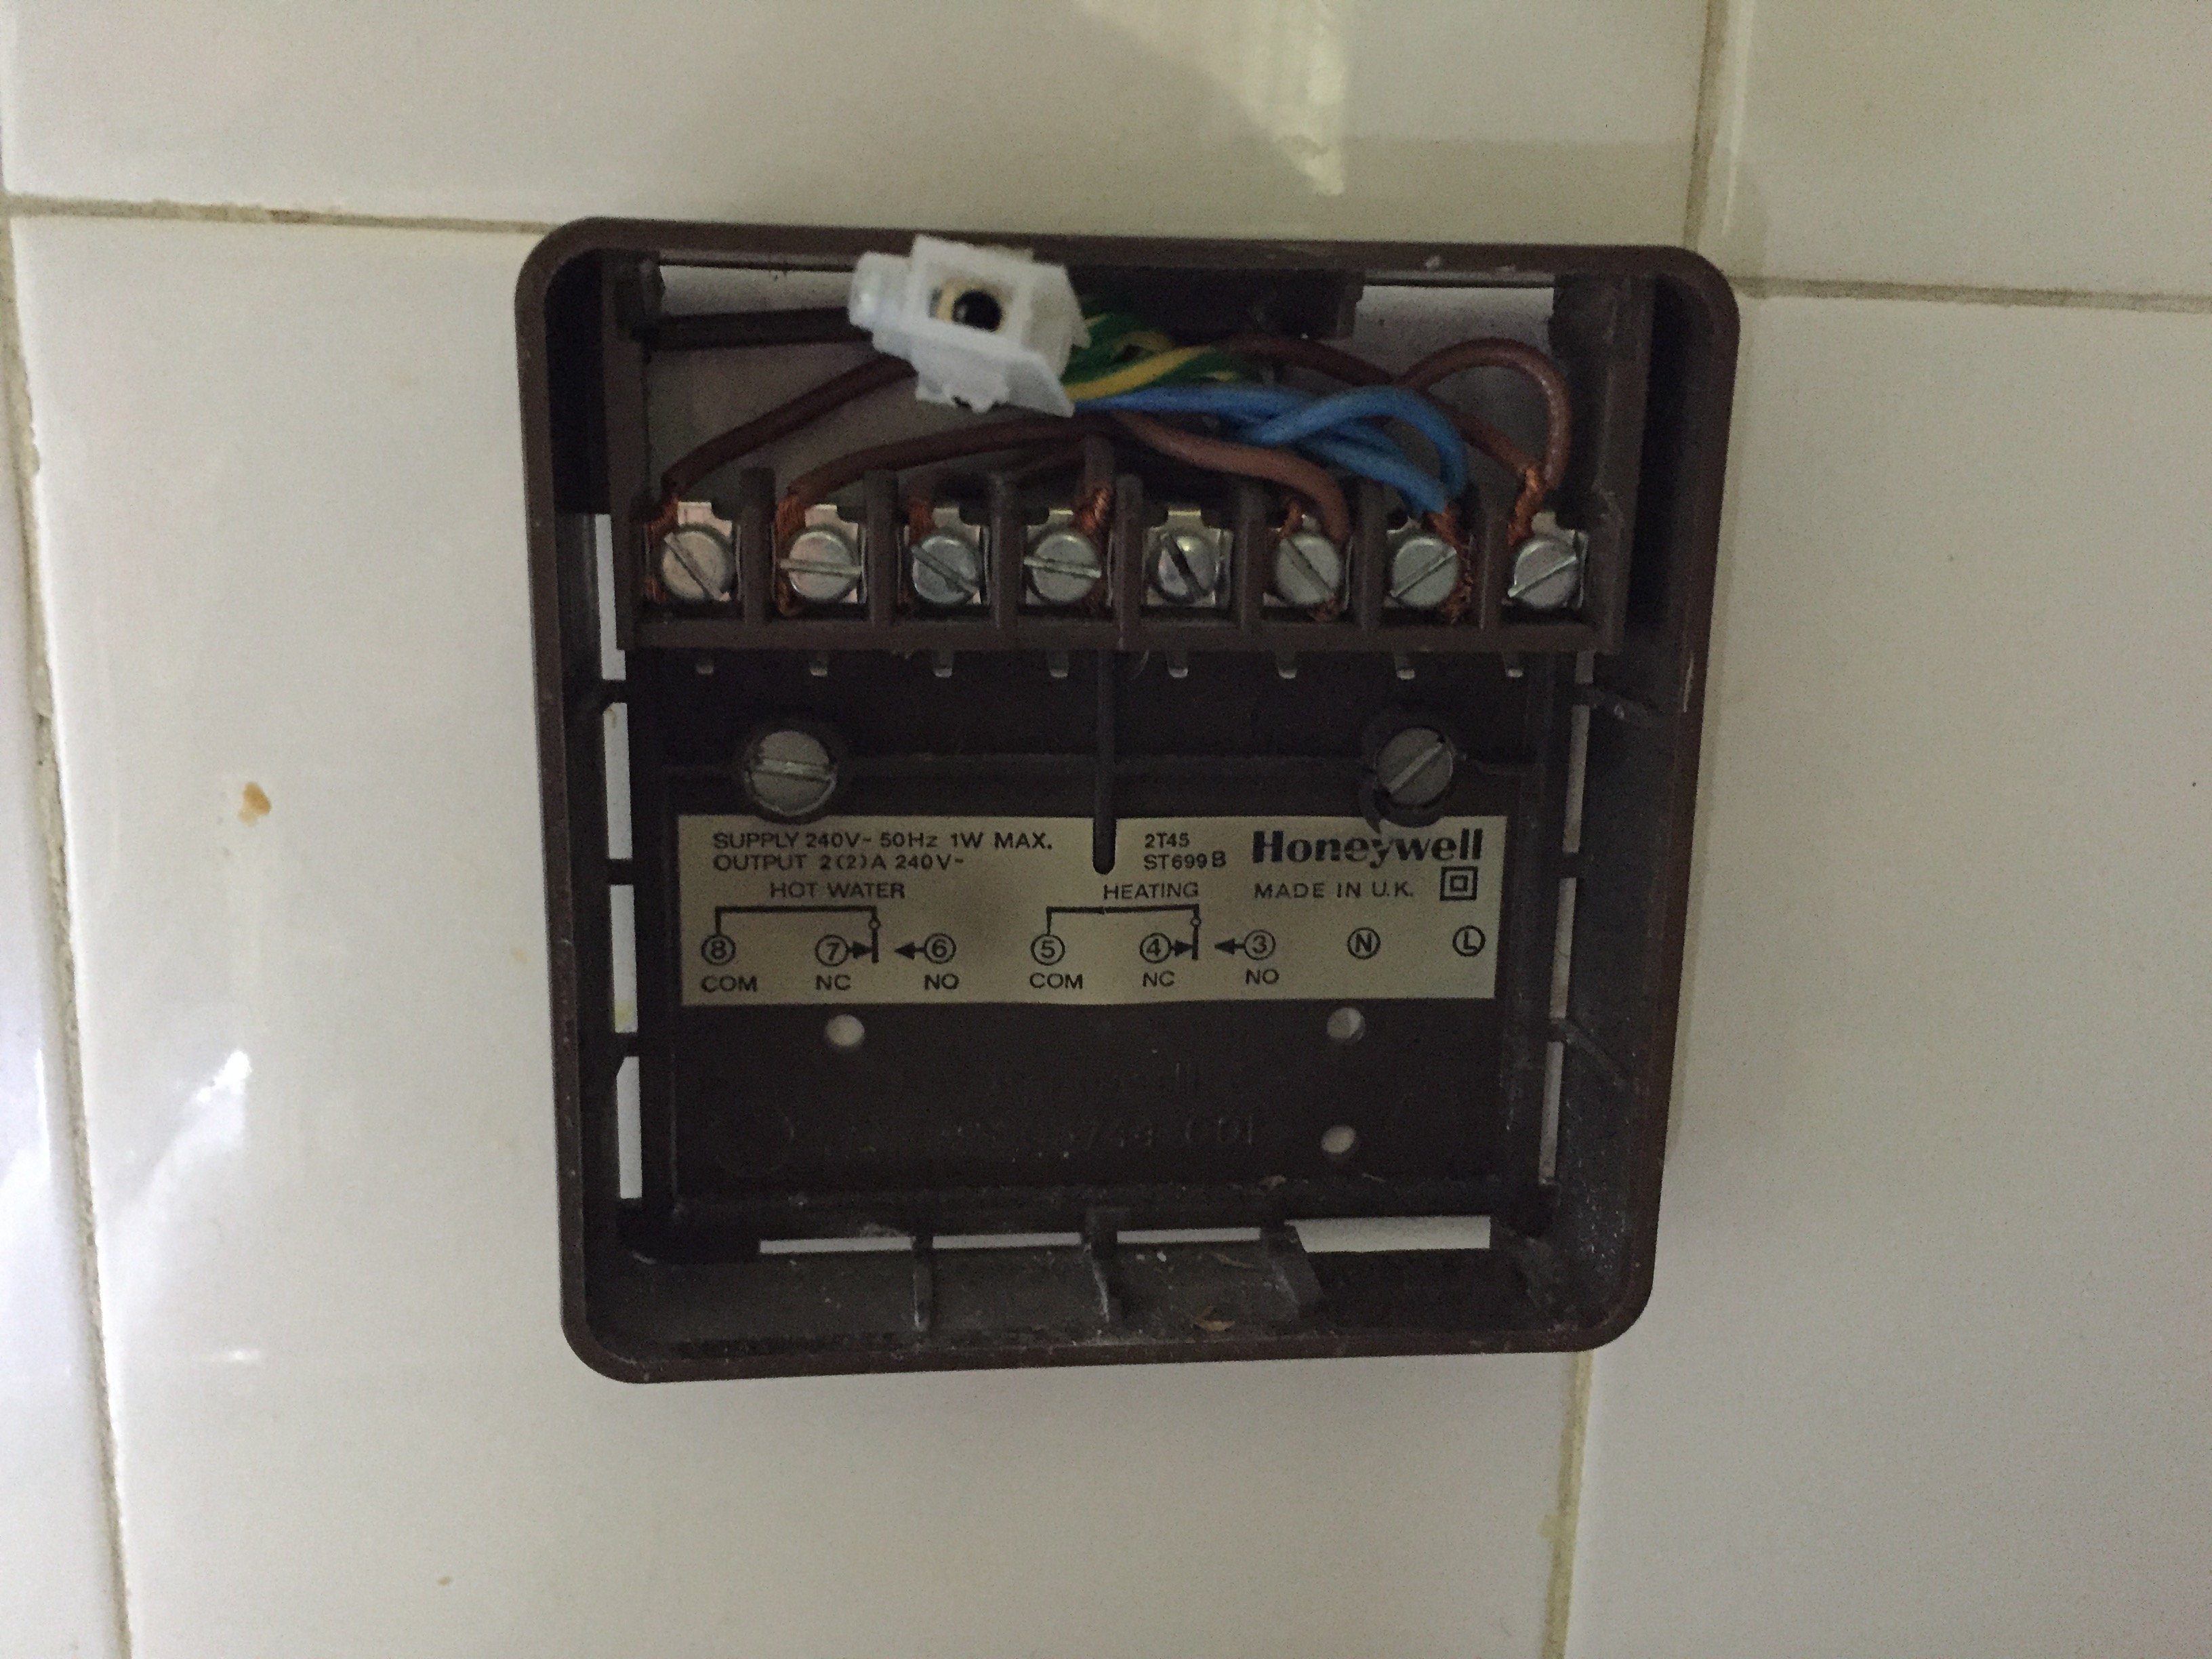 Attractive Glow Worm Boiler Reset Button Ideas - Everything You Need ...